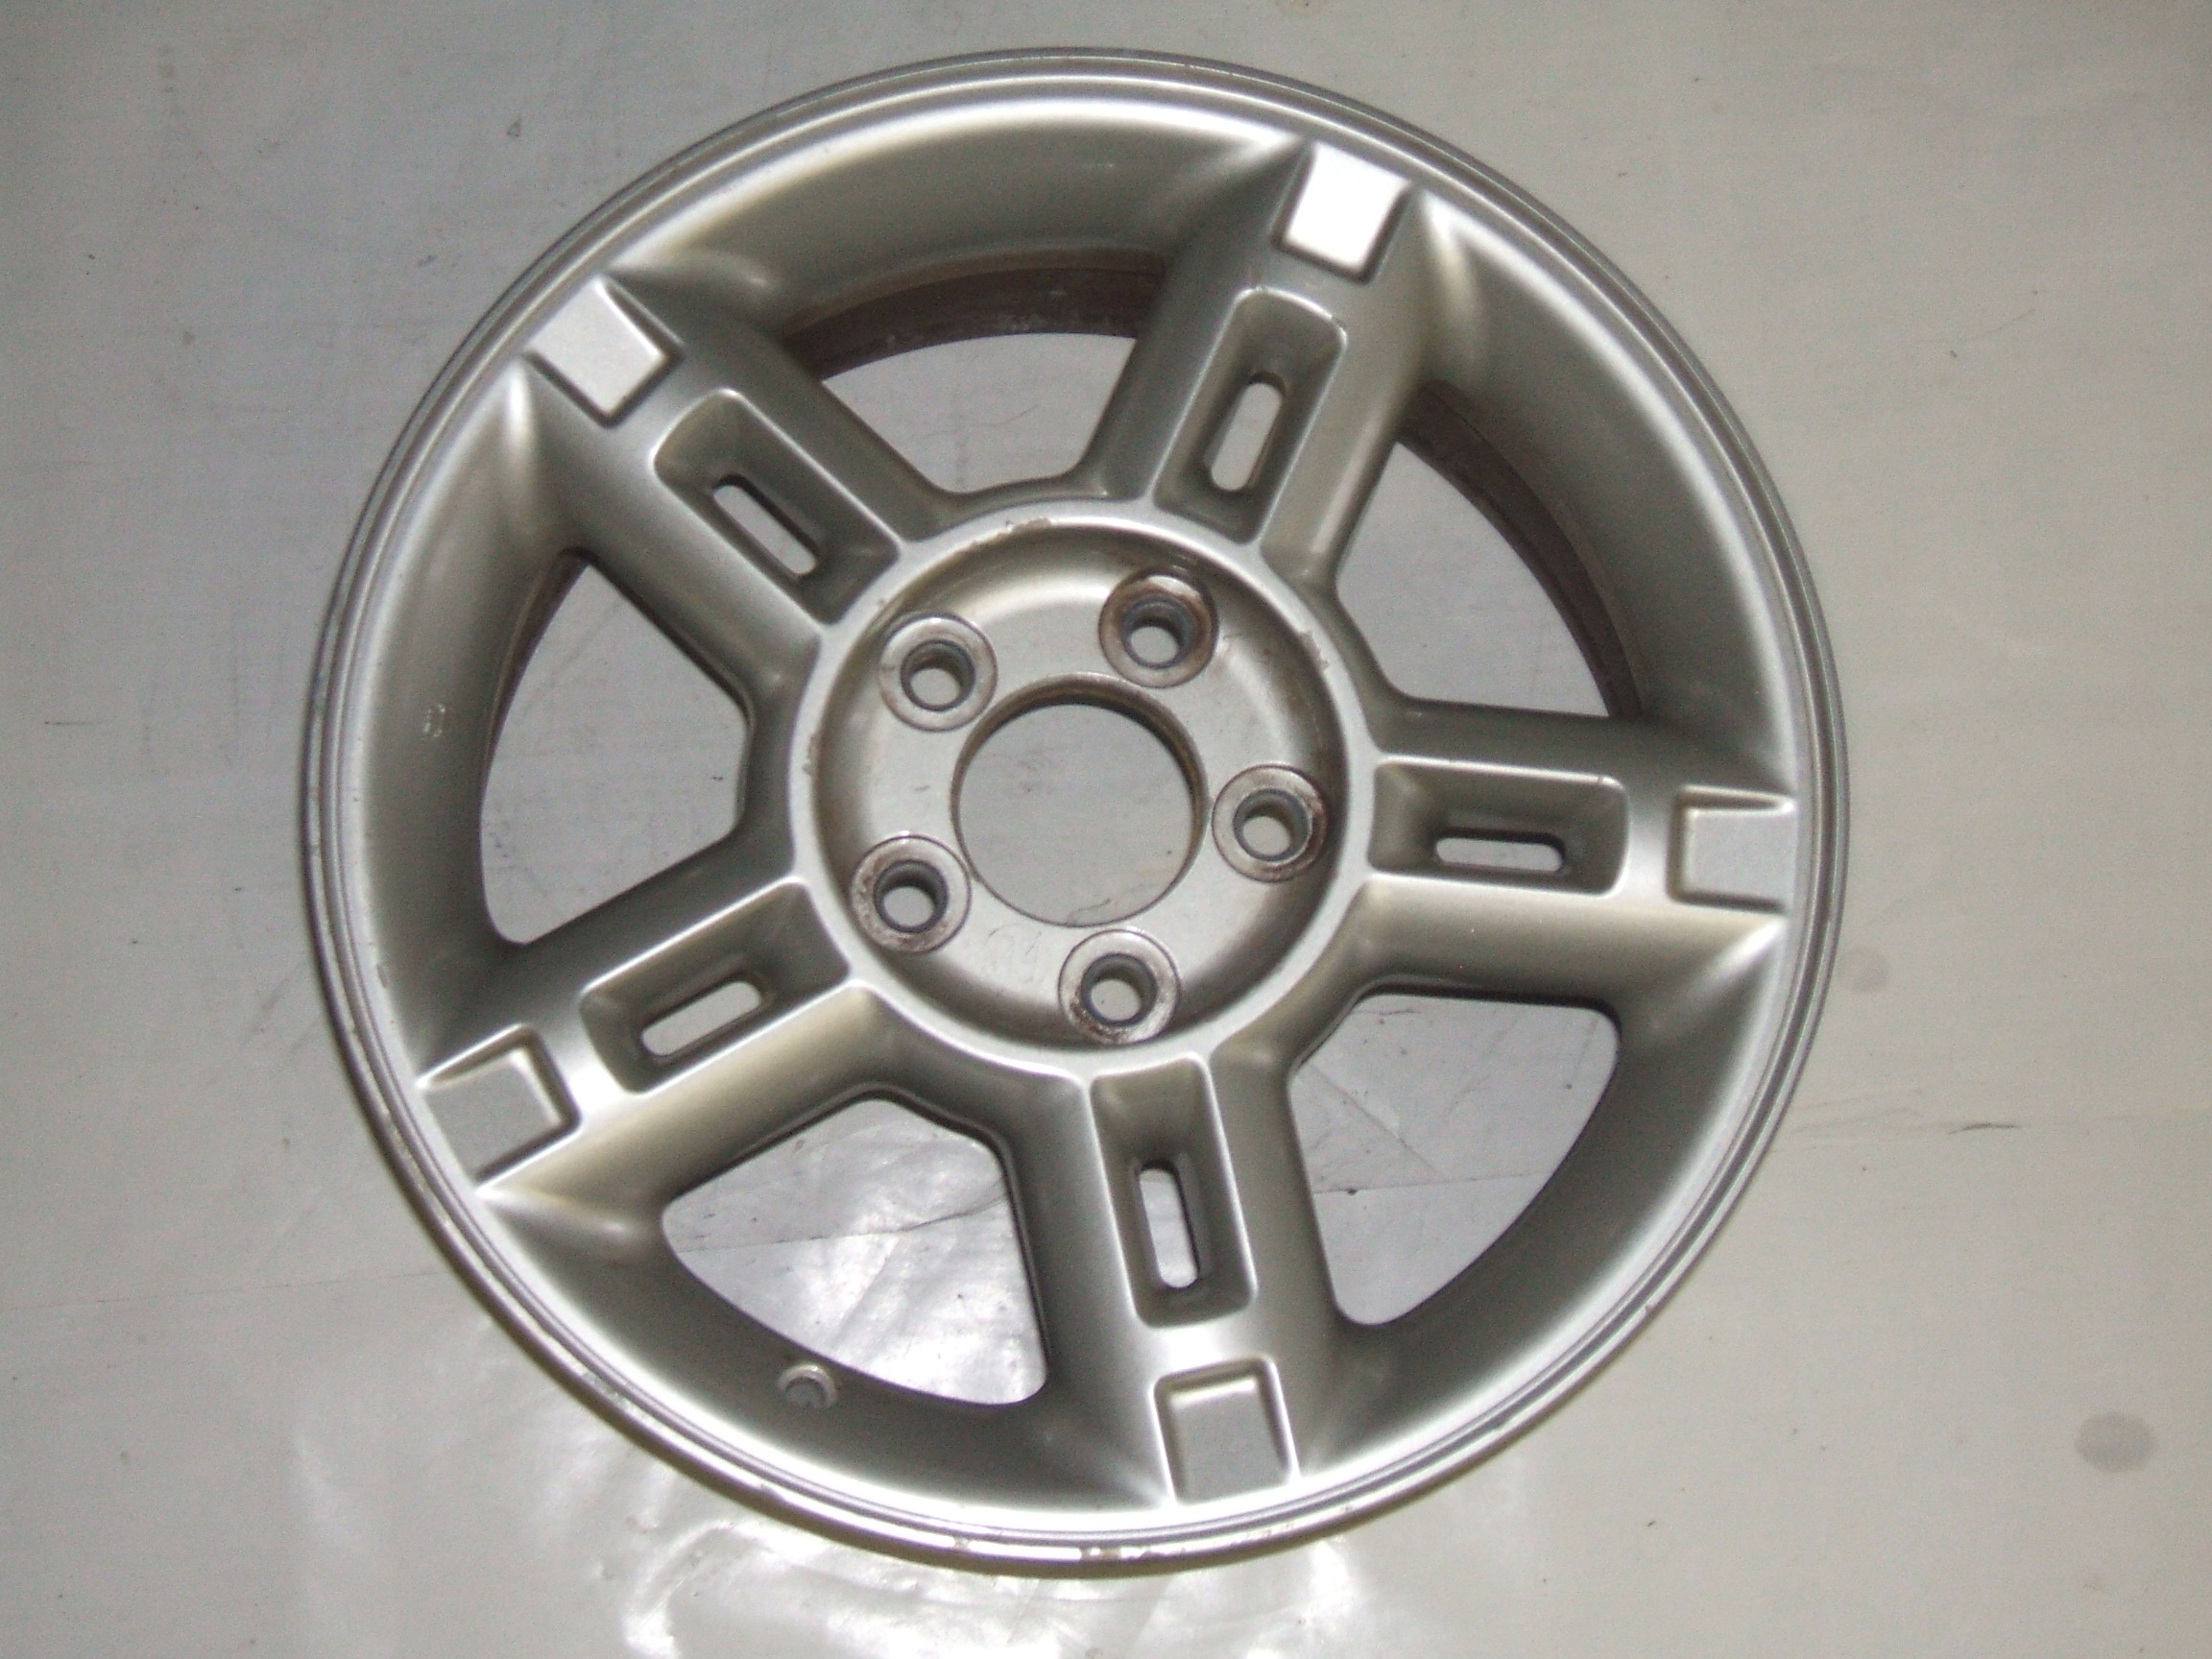 "Ford Explorer 02-05 16"" Aluminum Wheel 3450 P/N 1L24-1007-DJ"